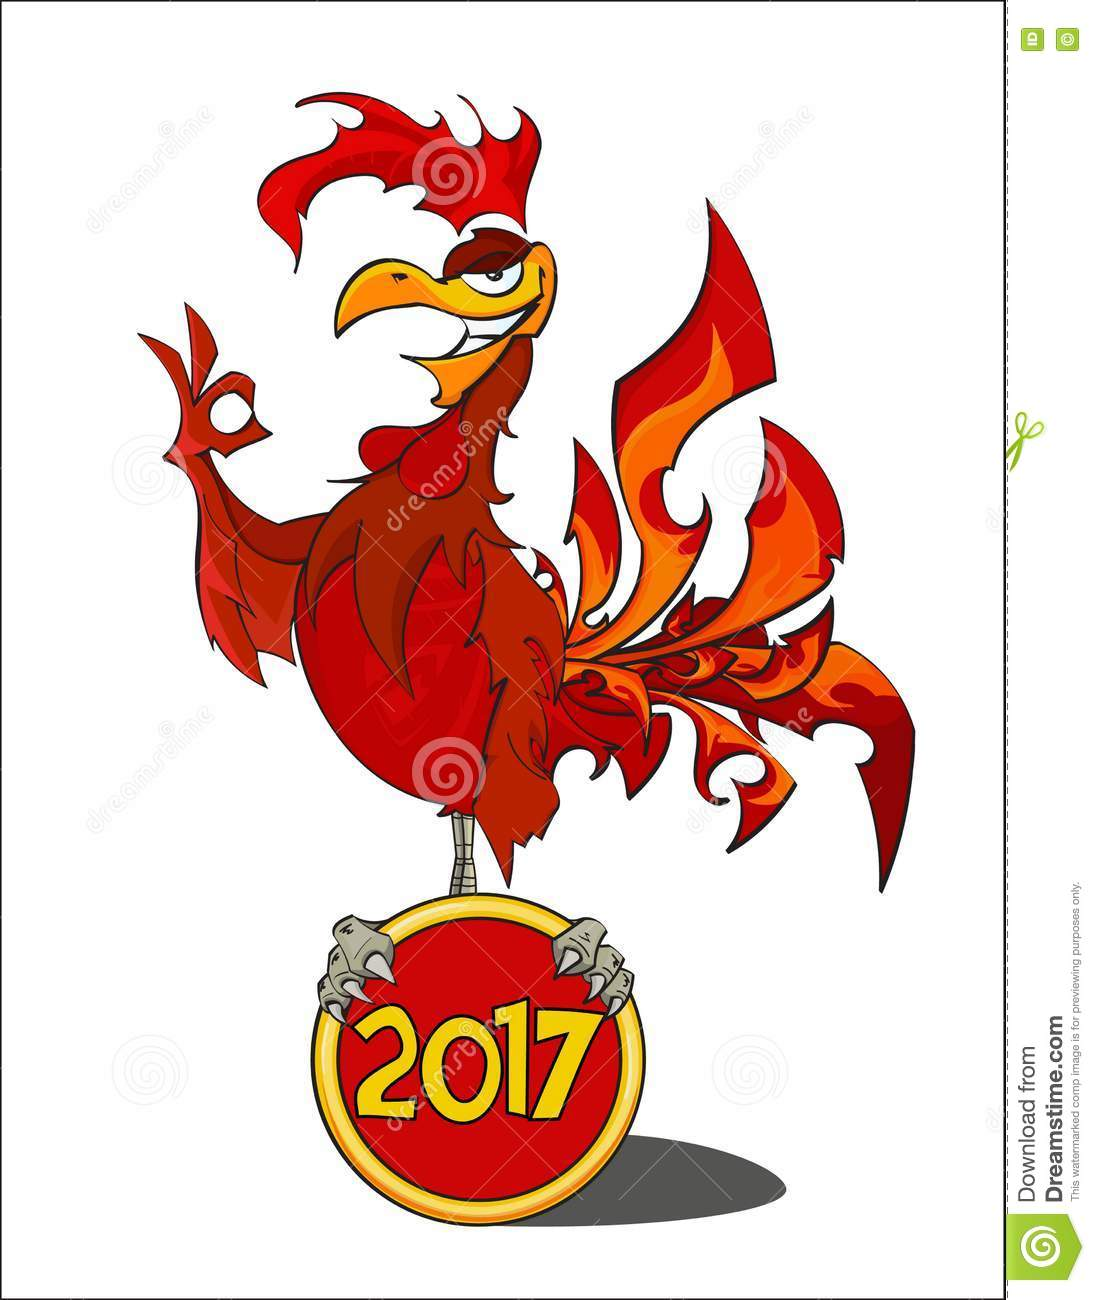 Red fiery rooster the symbol of the chinese new year 2017 red fiery rooster the symbol of the chinese new year 2017 biocorpaavc